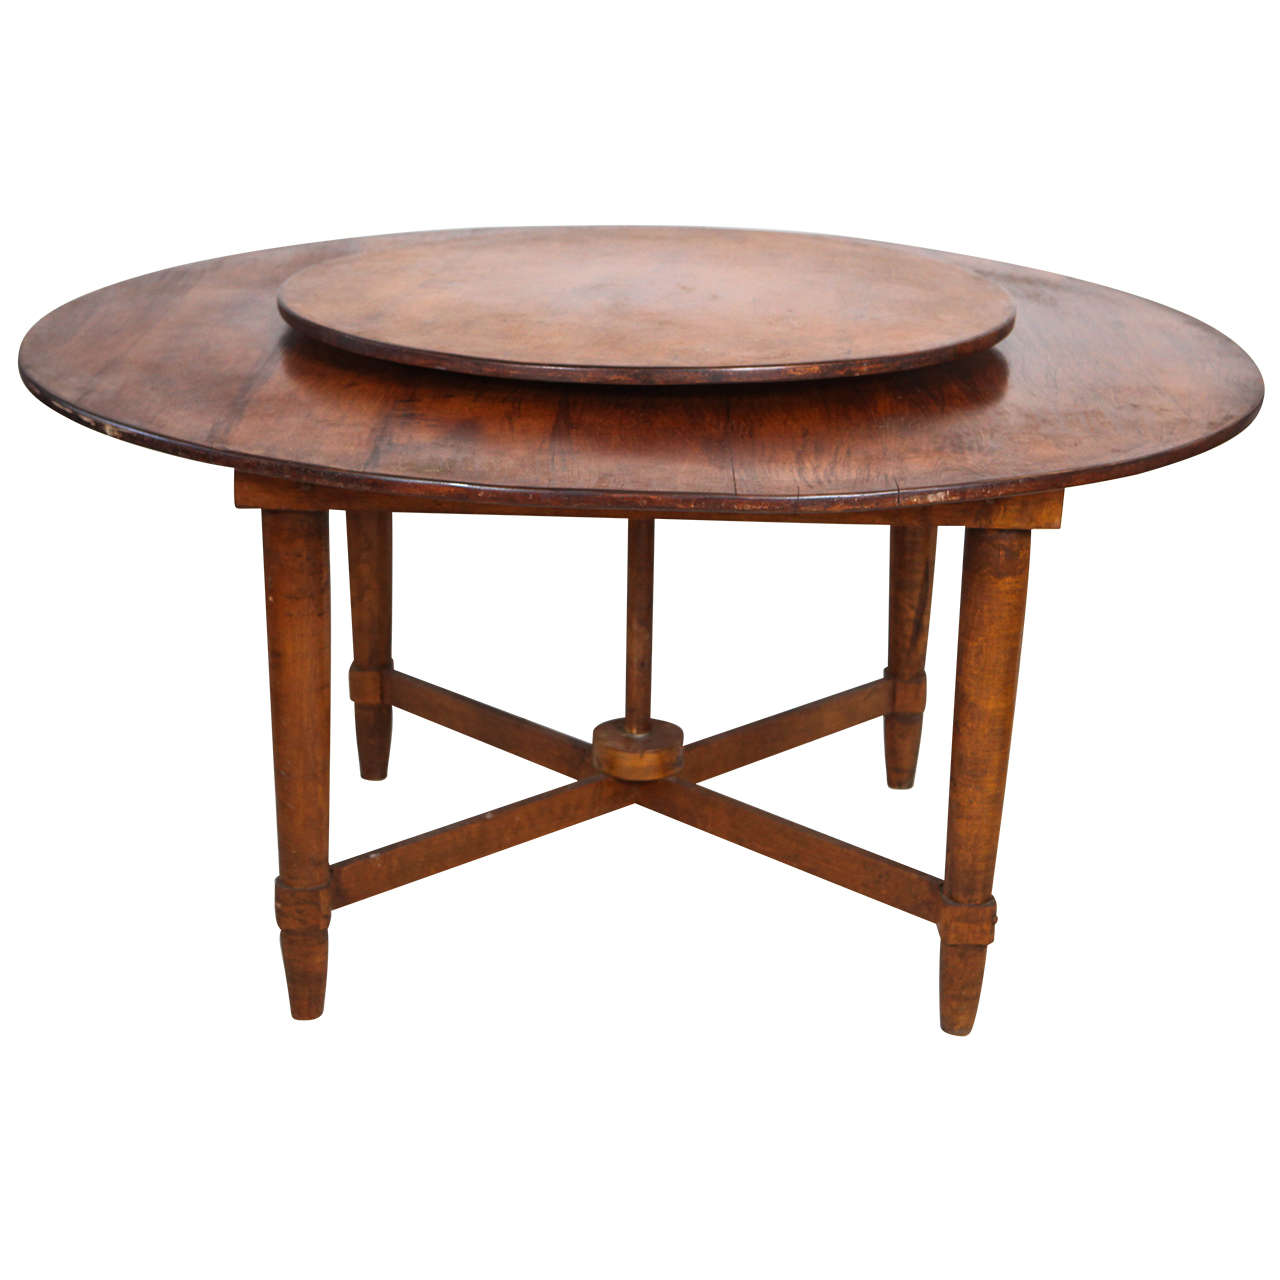 distinct rustic round dining table with built in lazy